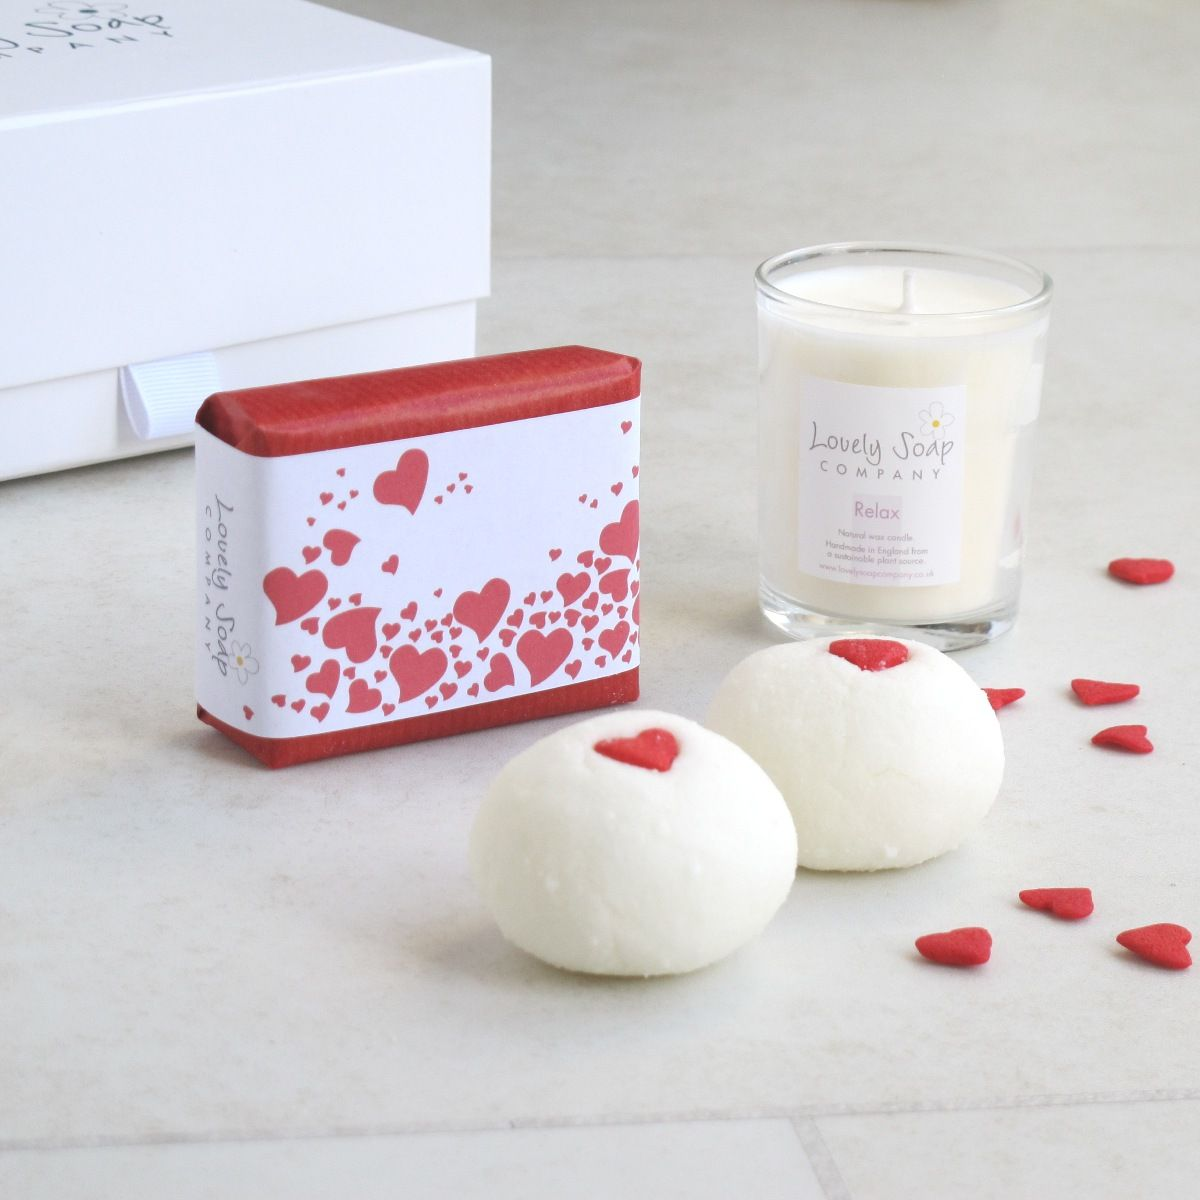 Valentine's Day gift ideas personalised soap and bath gift sets